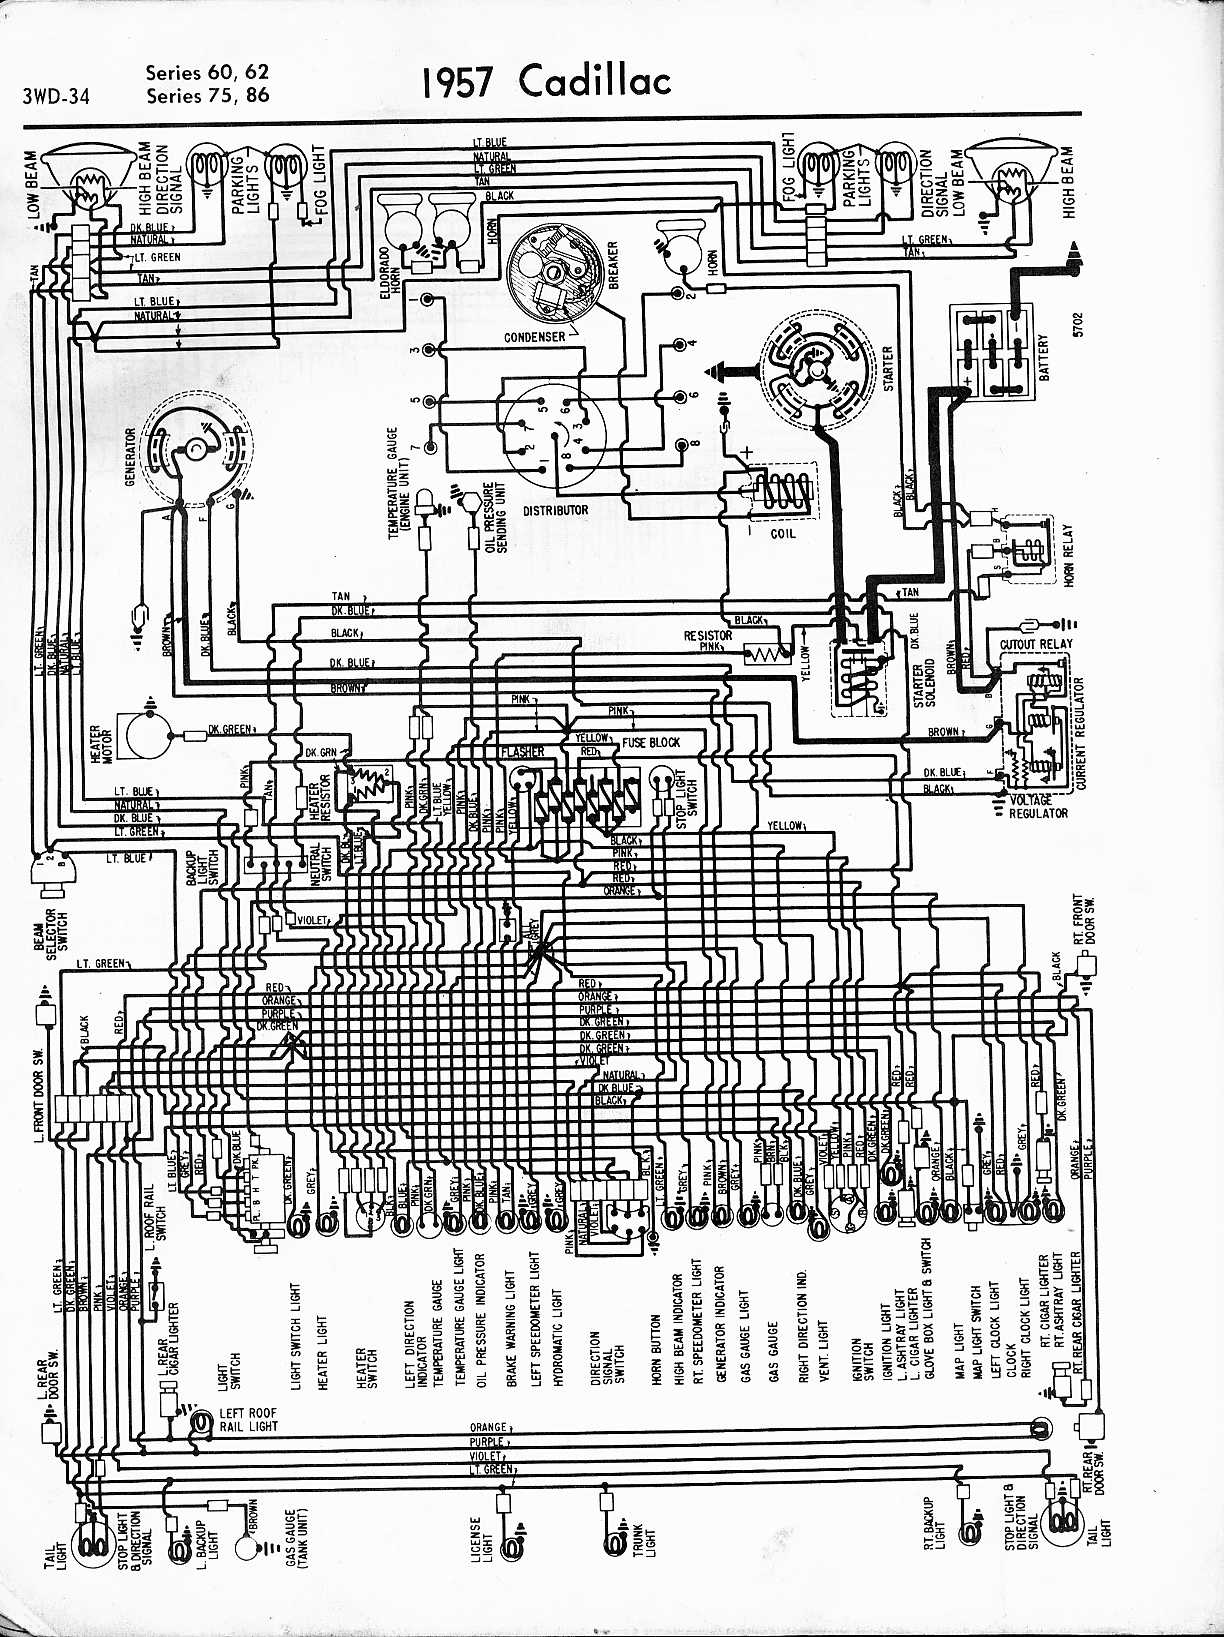 [TBQL_4184]  DIAGRAM] 1977 Cadillac Headlight Wiring Diagram FULL Version HD Quality Wiring  Diagram - FUSICP8820.STUDIOBARTELLONI.IT | Cadillac Dts Wiring Diagrams |  | studiobartelloni.it